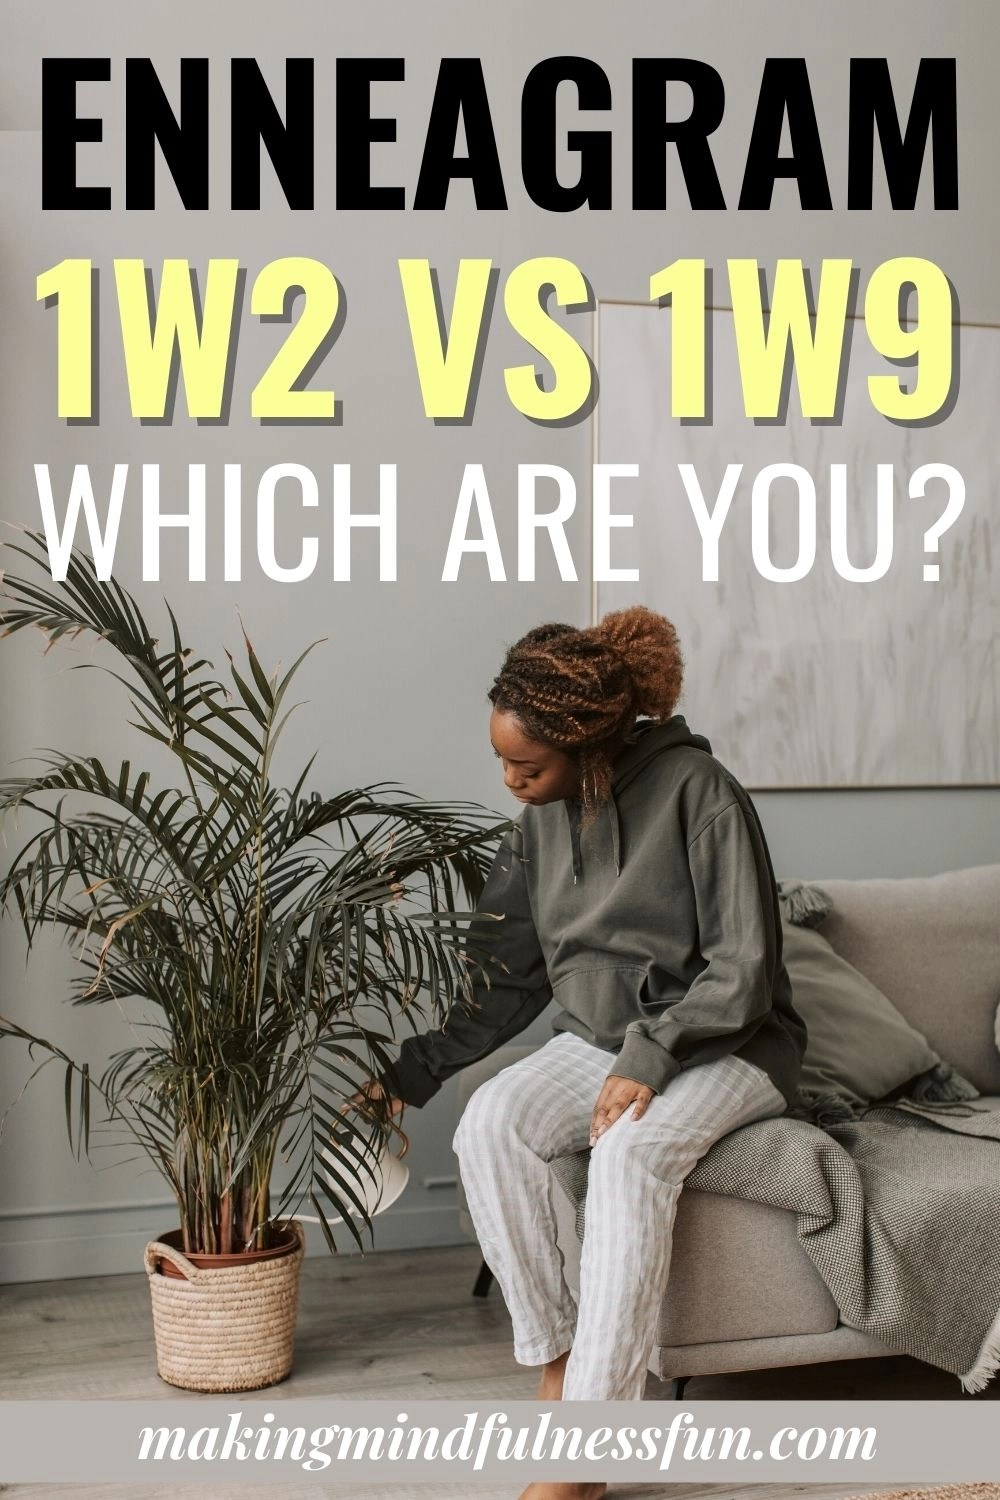 Enneagram 1w2 vs 1w9 Which Are You